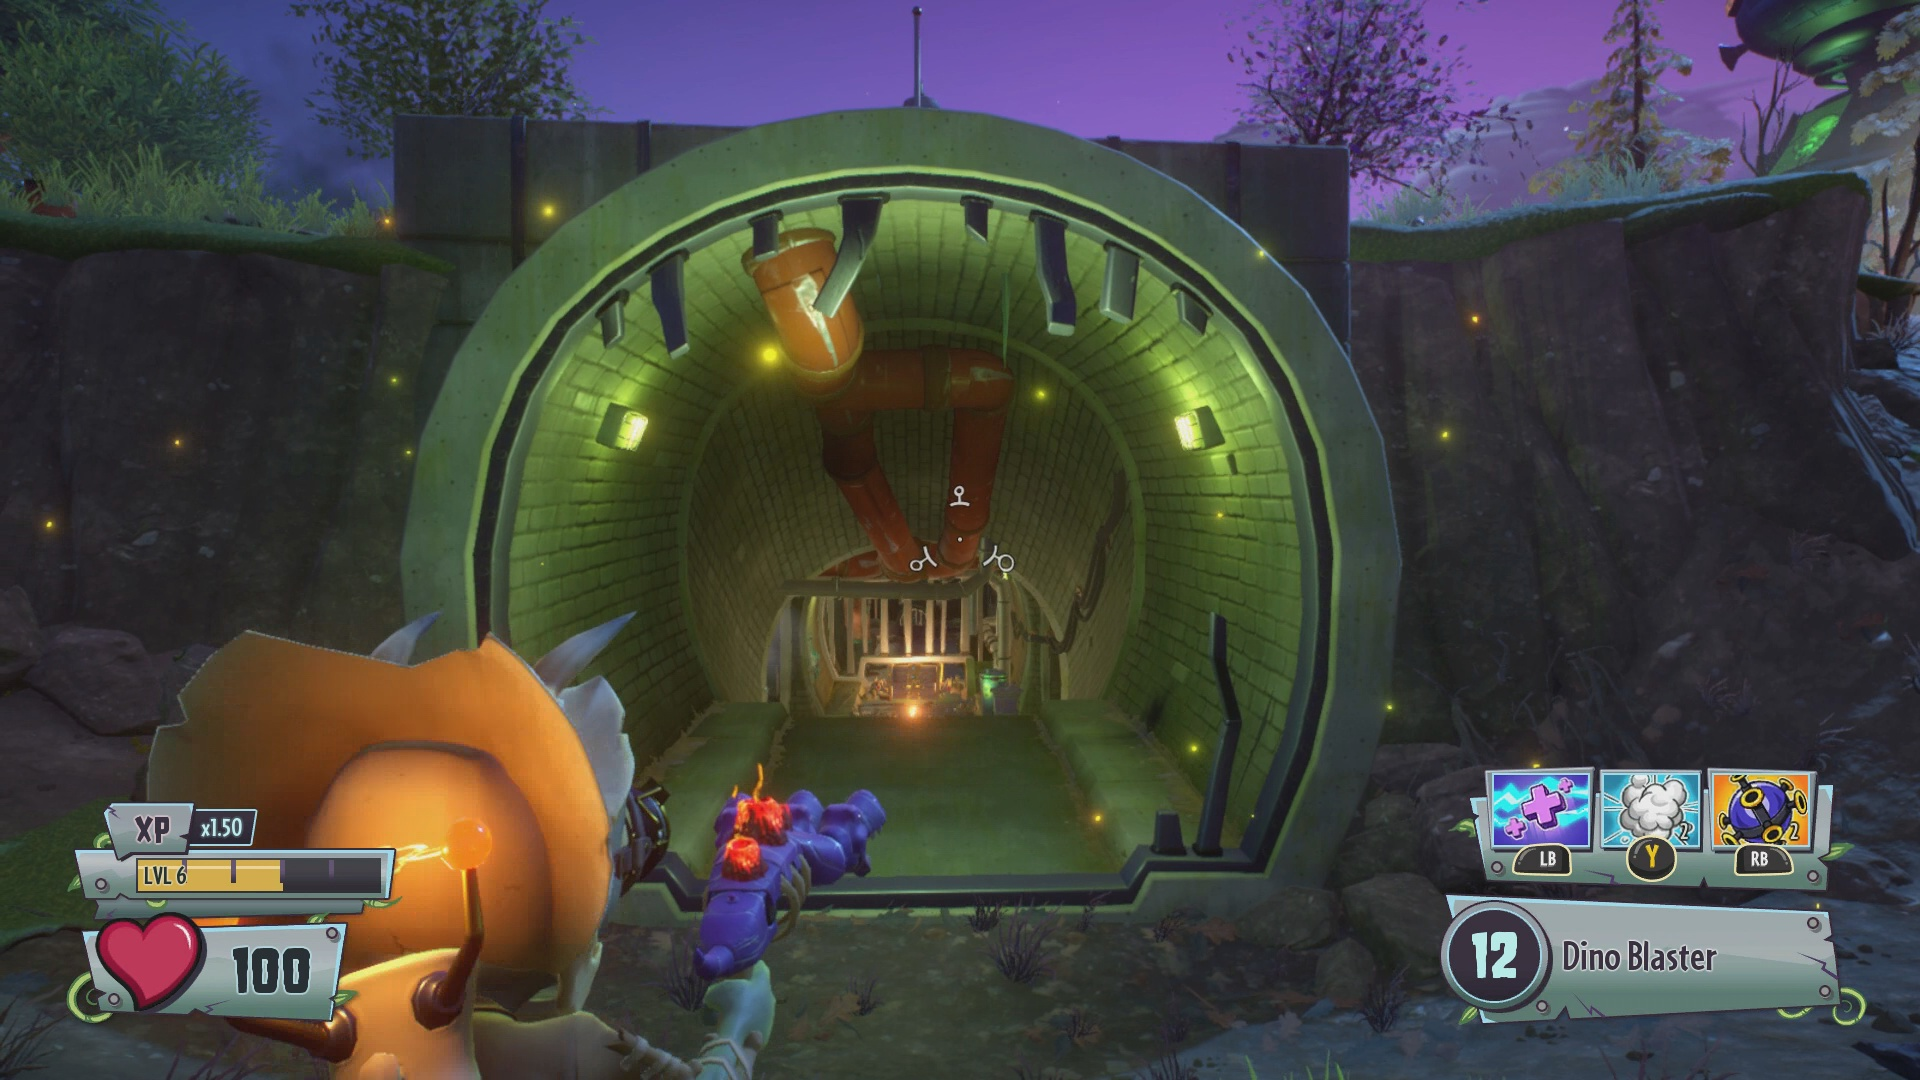 Plants vs zombies garden warfare 2 free coin chests Plants vs zombies garden warfare 2 event calendar